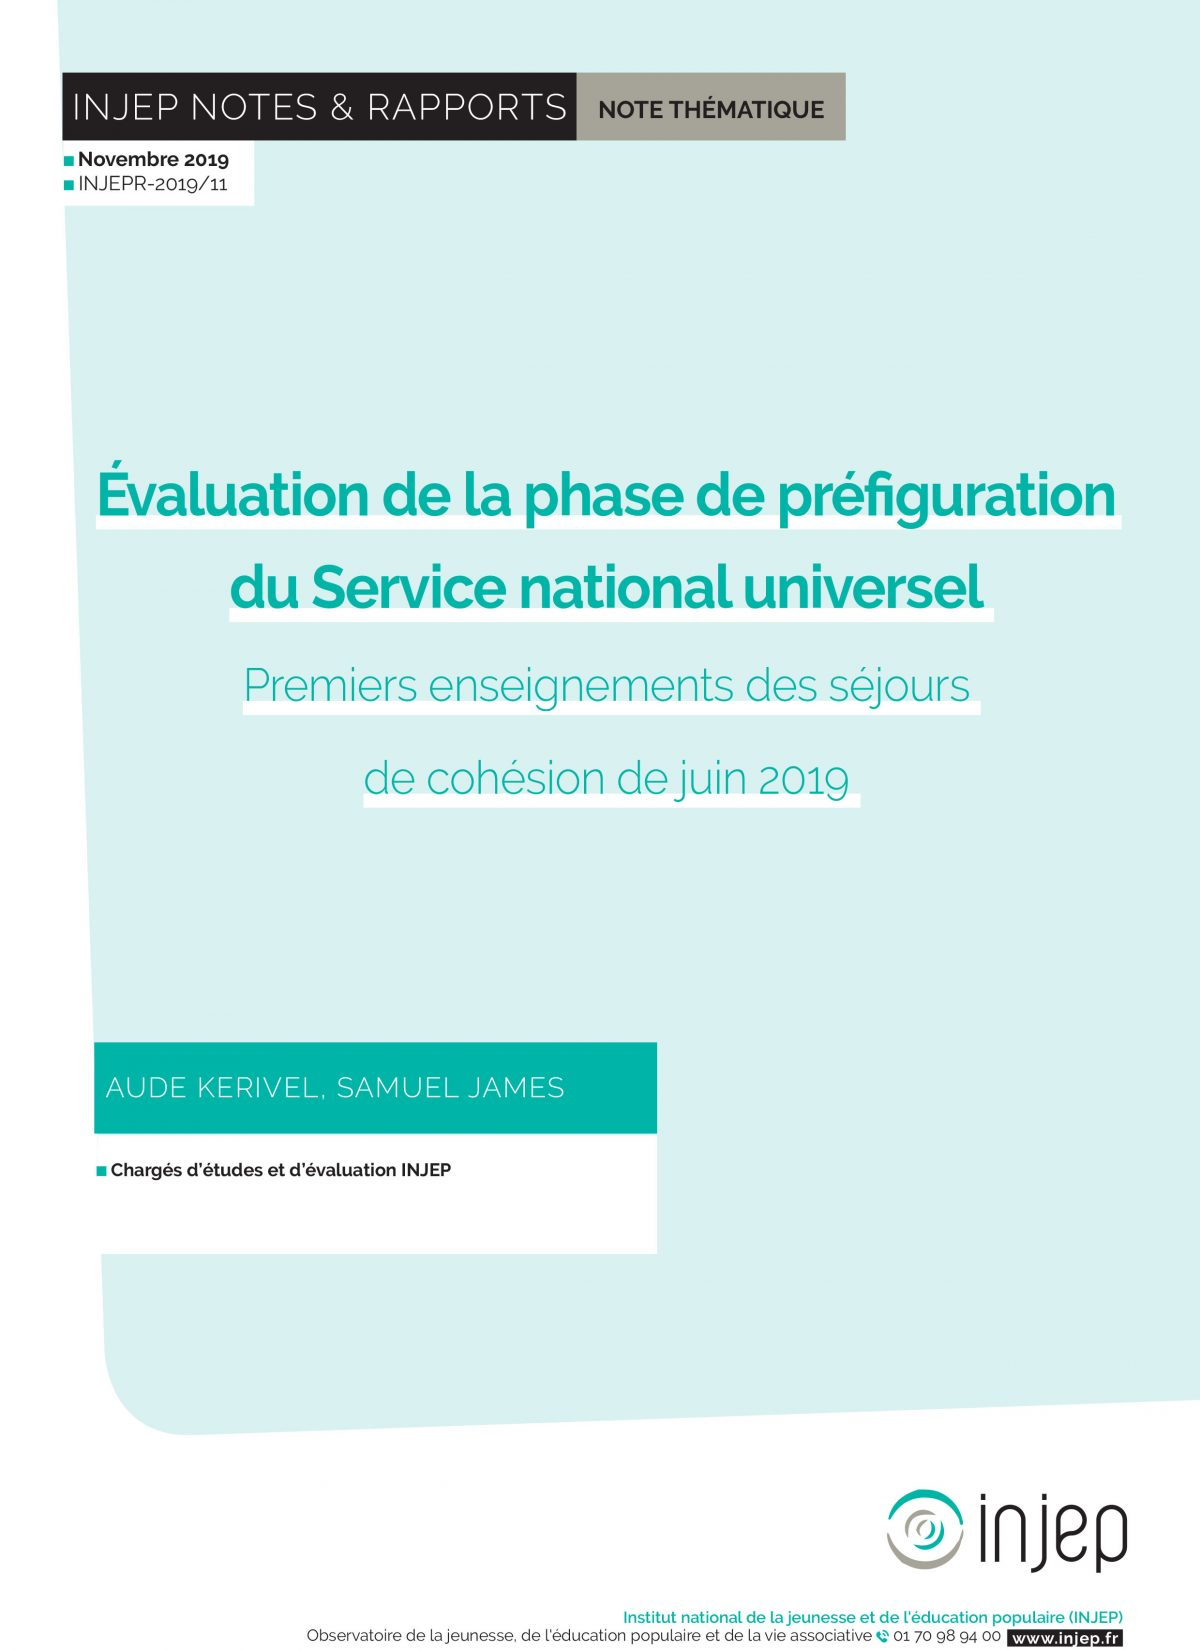 Évaluation de la phase de préfiguration du Service national universel